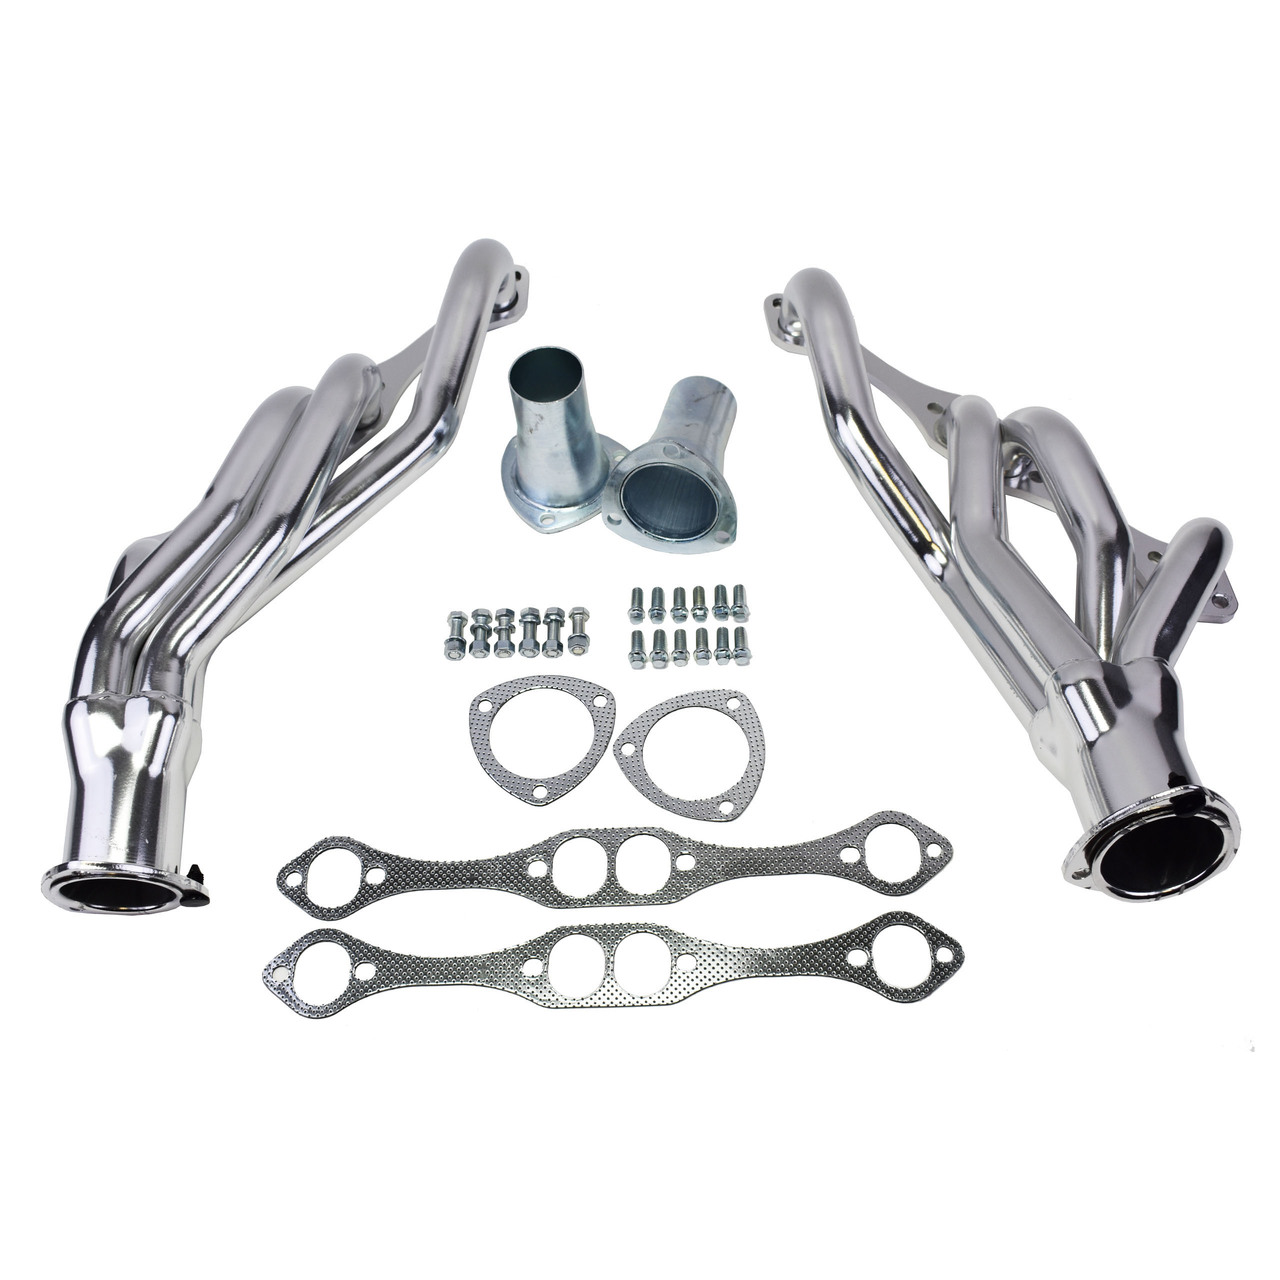 A-Team Performance SBC 283 327 350 383 400 MID LENGTH CAMARO 67-81, CHEVELLE  NOVA 68-79 CERAMIC COATED HEADERS